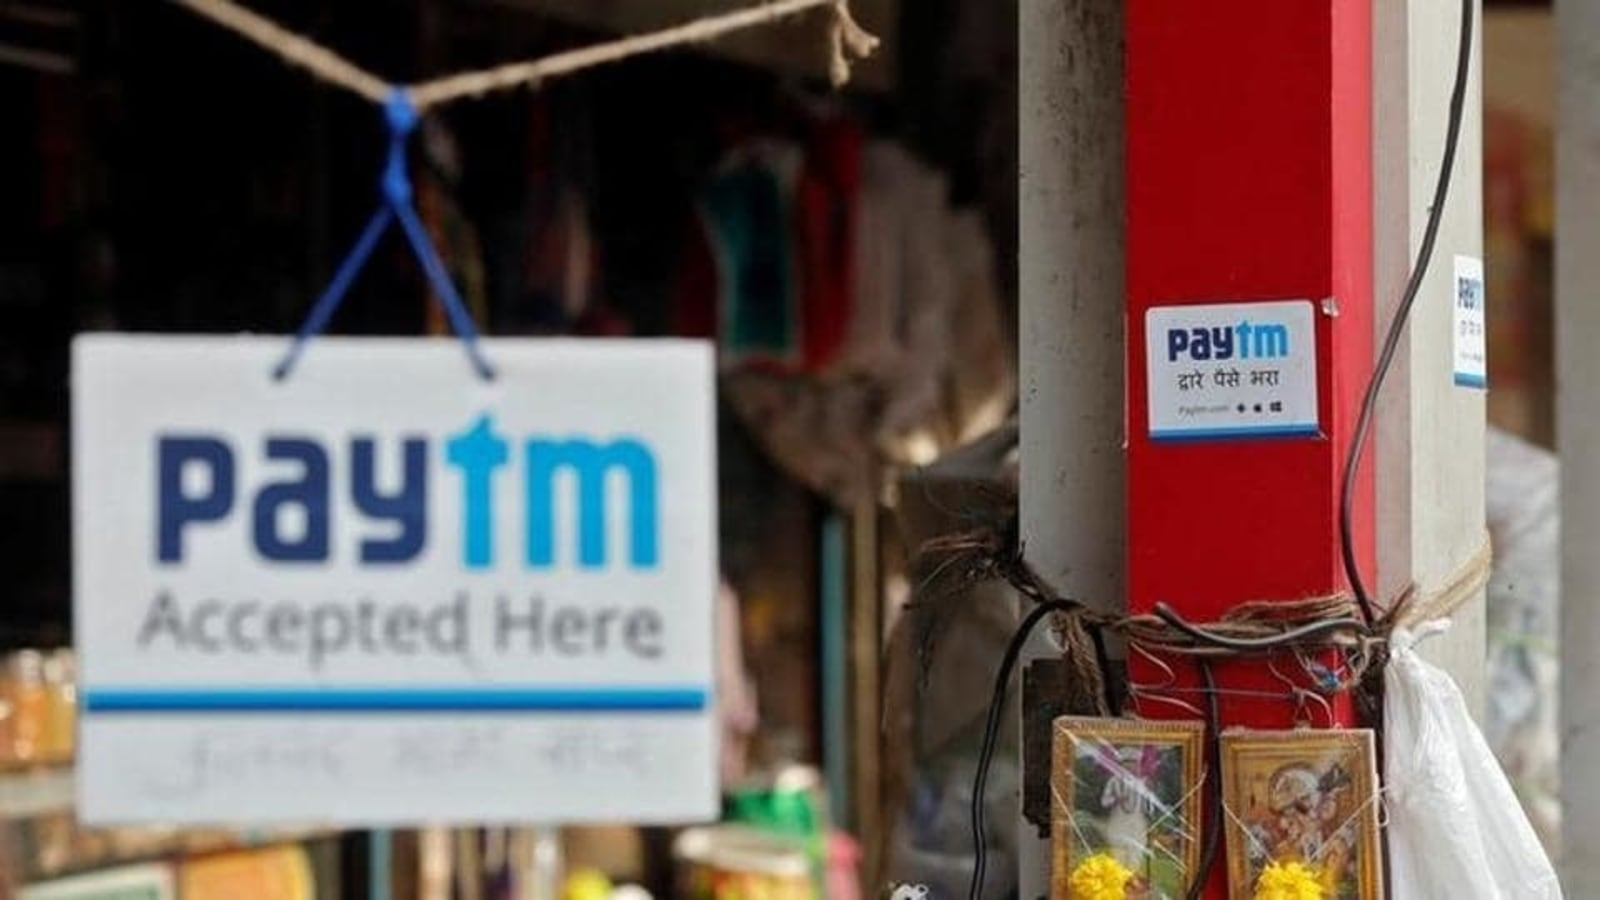 COVID-19 Vaccine: Paytm users can book vaccines within the app